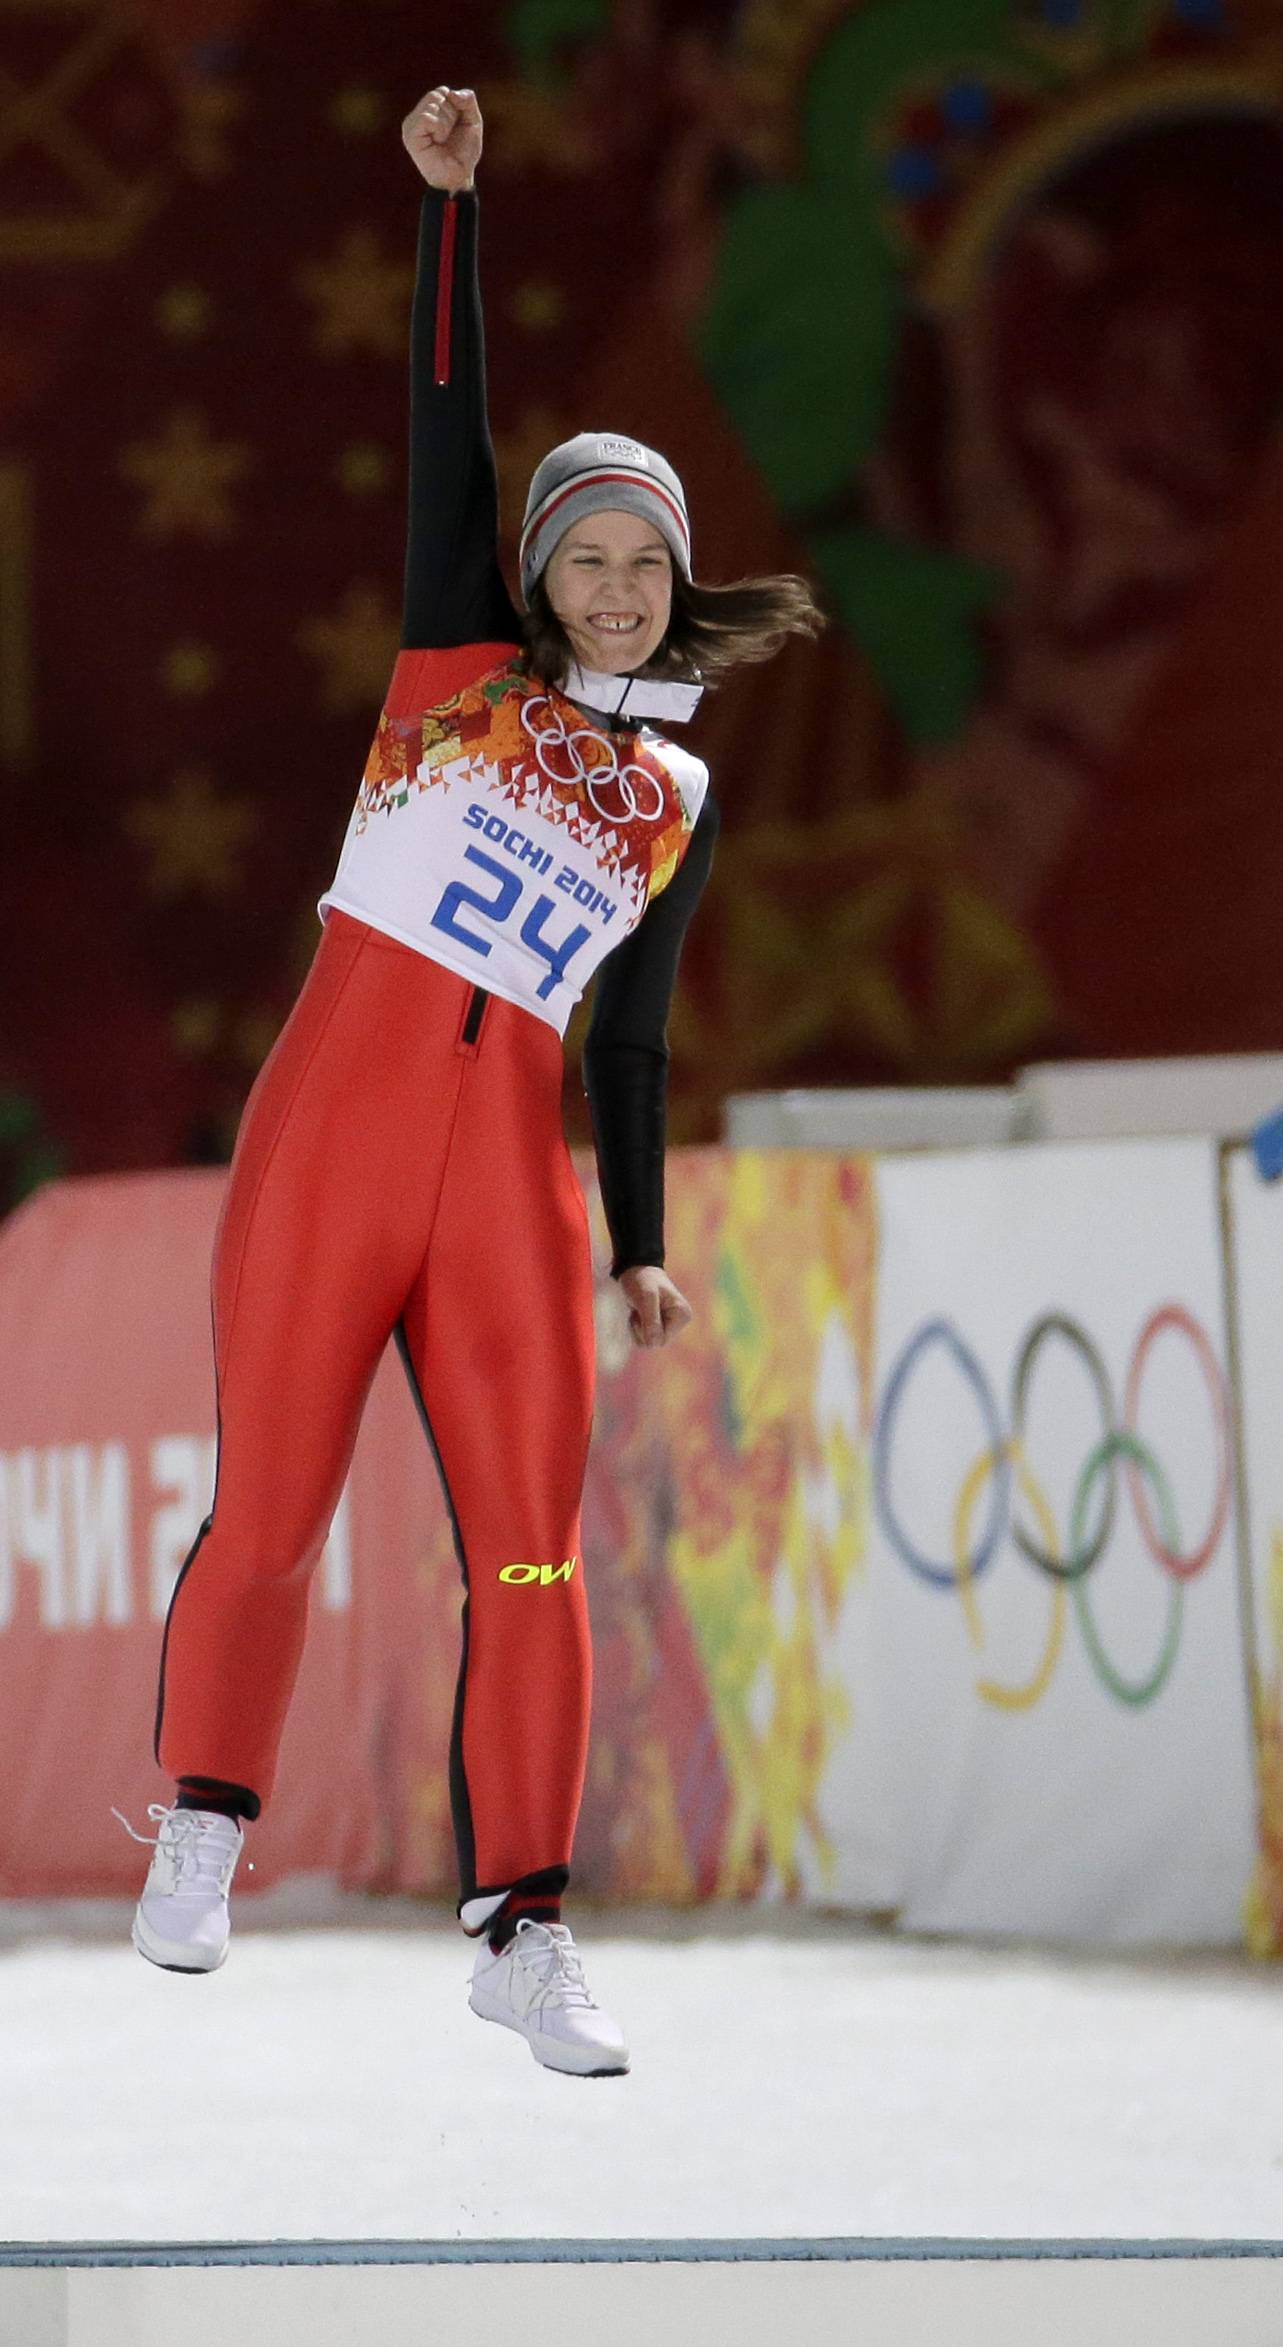 France's Coline Mattel celebrates during a flower ceremony after winning bronze in the women's normal hill ski jumping final,